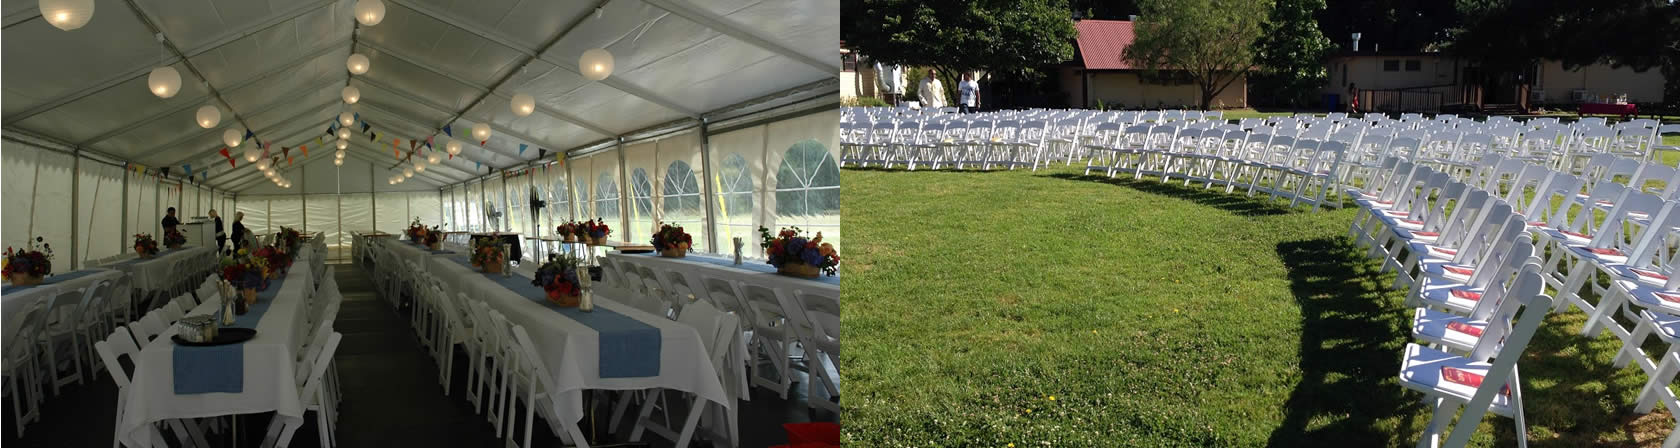 Party Equipment Hire | Marquee Hire Melbourne Australia - Waverley Party Hire : tent melbourne - memphite.com